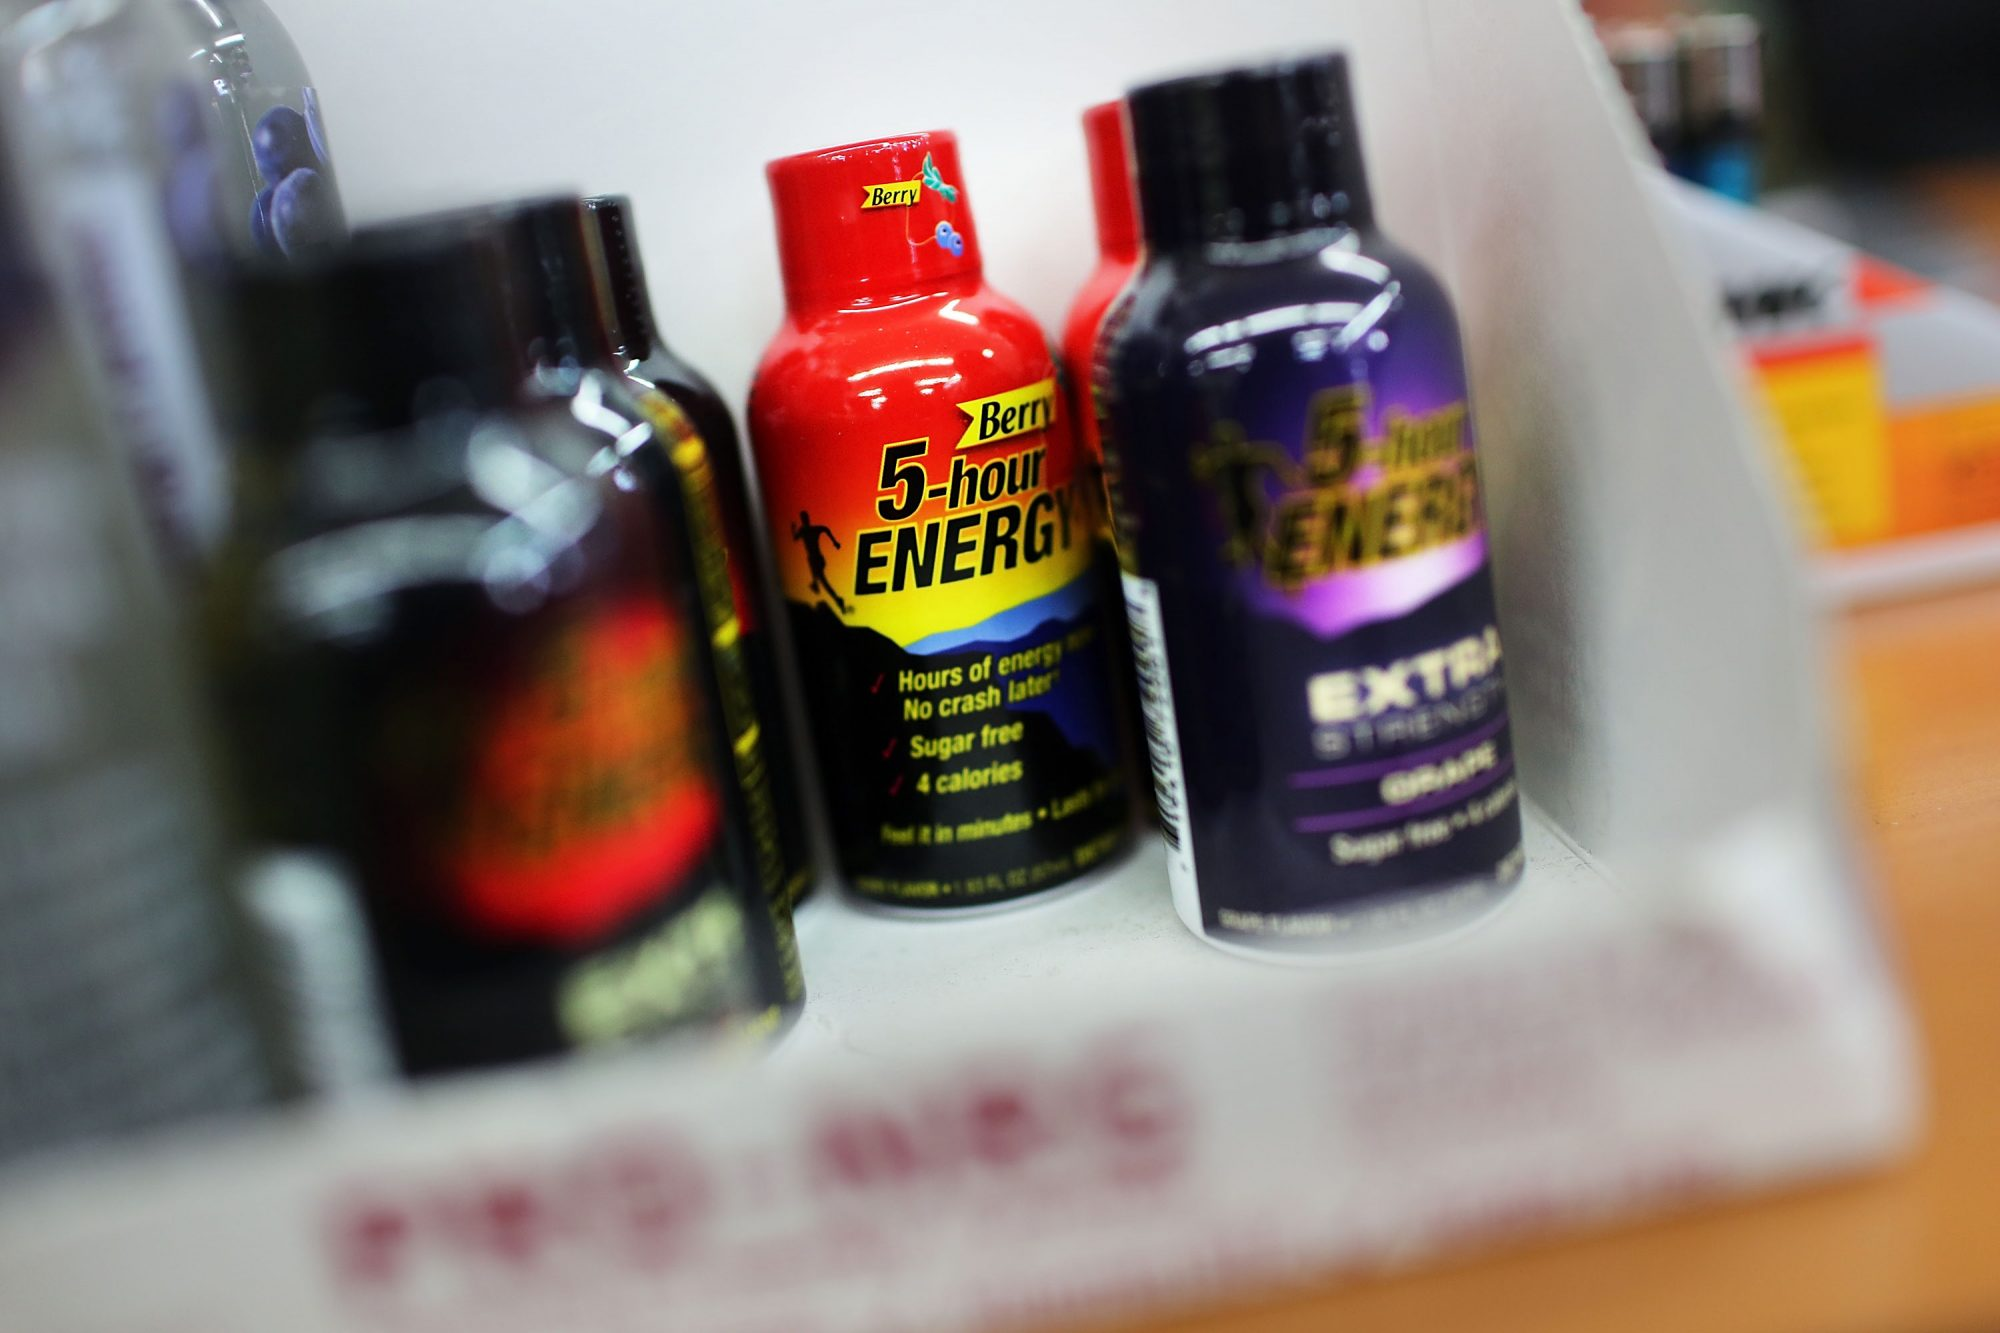 EC: Is 5-Hour Energy Actually Better Than Coffee and Recommended by Doctors?